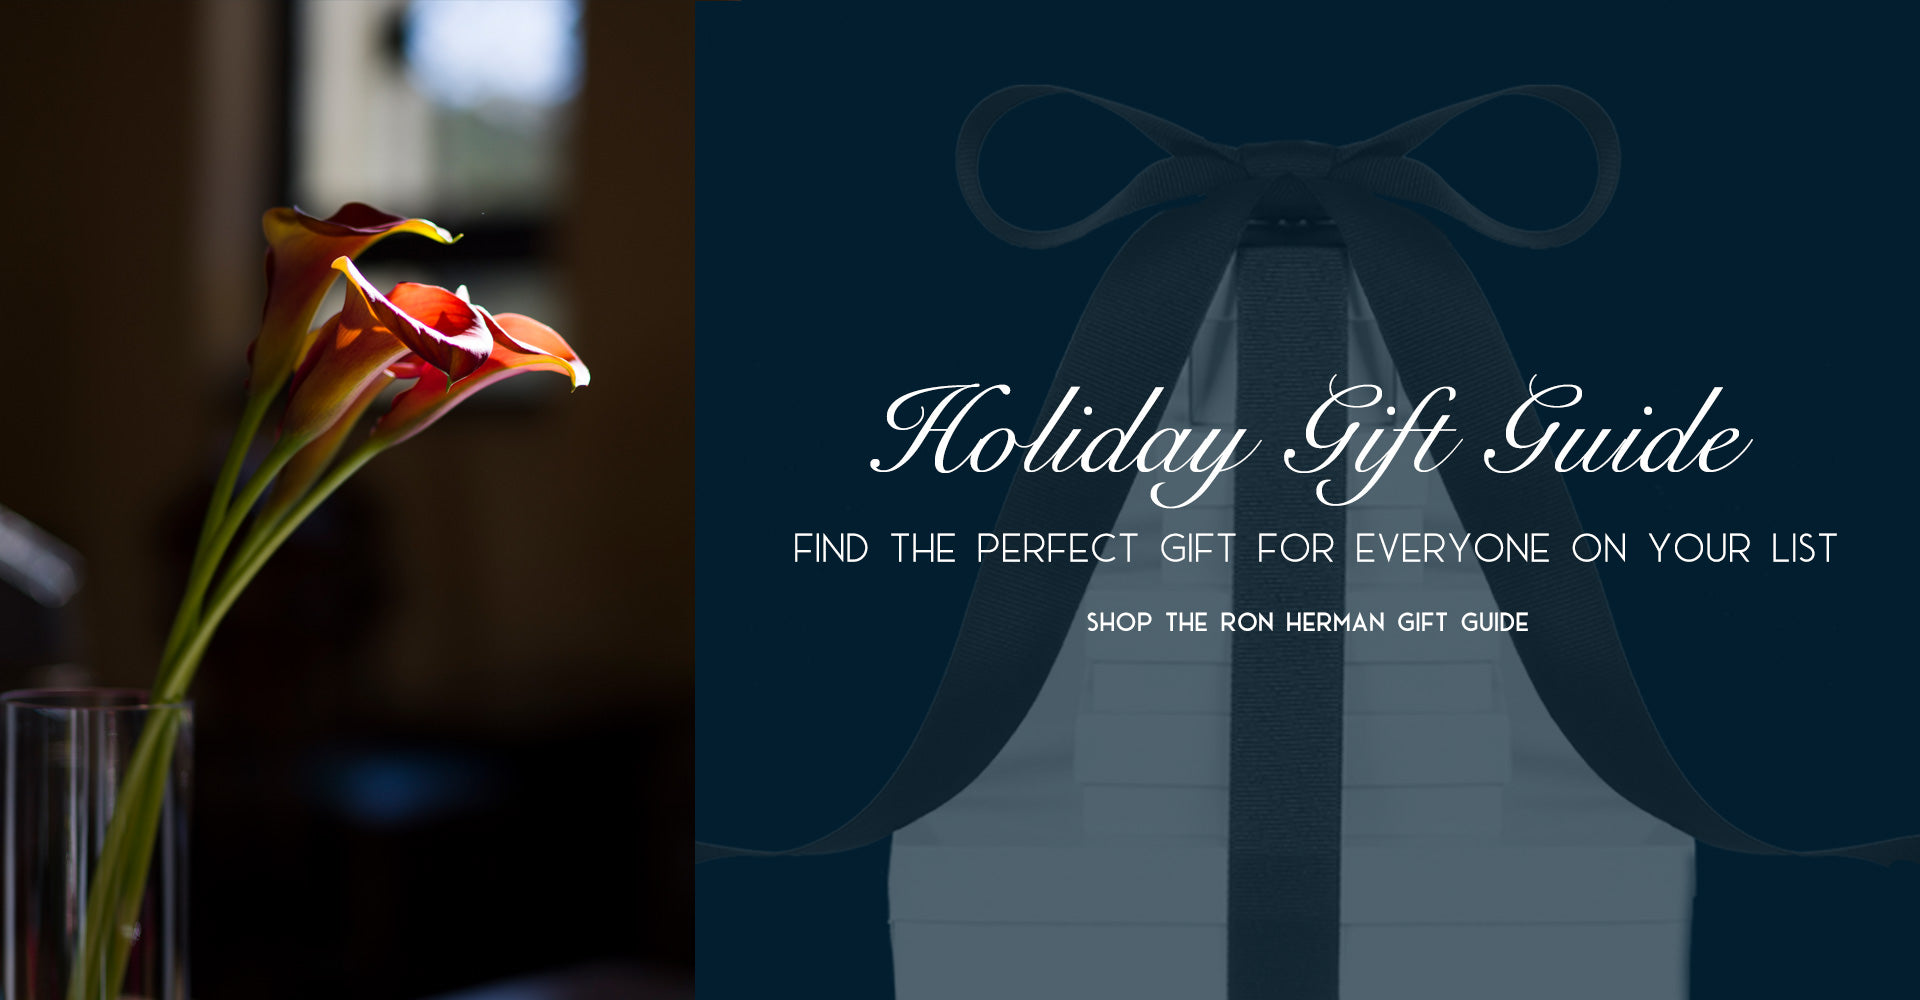 Introducing the Ron Herman 2019 Holiday Gift Guide Find the Perfect Gift for Everyone On Your List Shop the Ron Herman 2019 Holiday Gift Guide